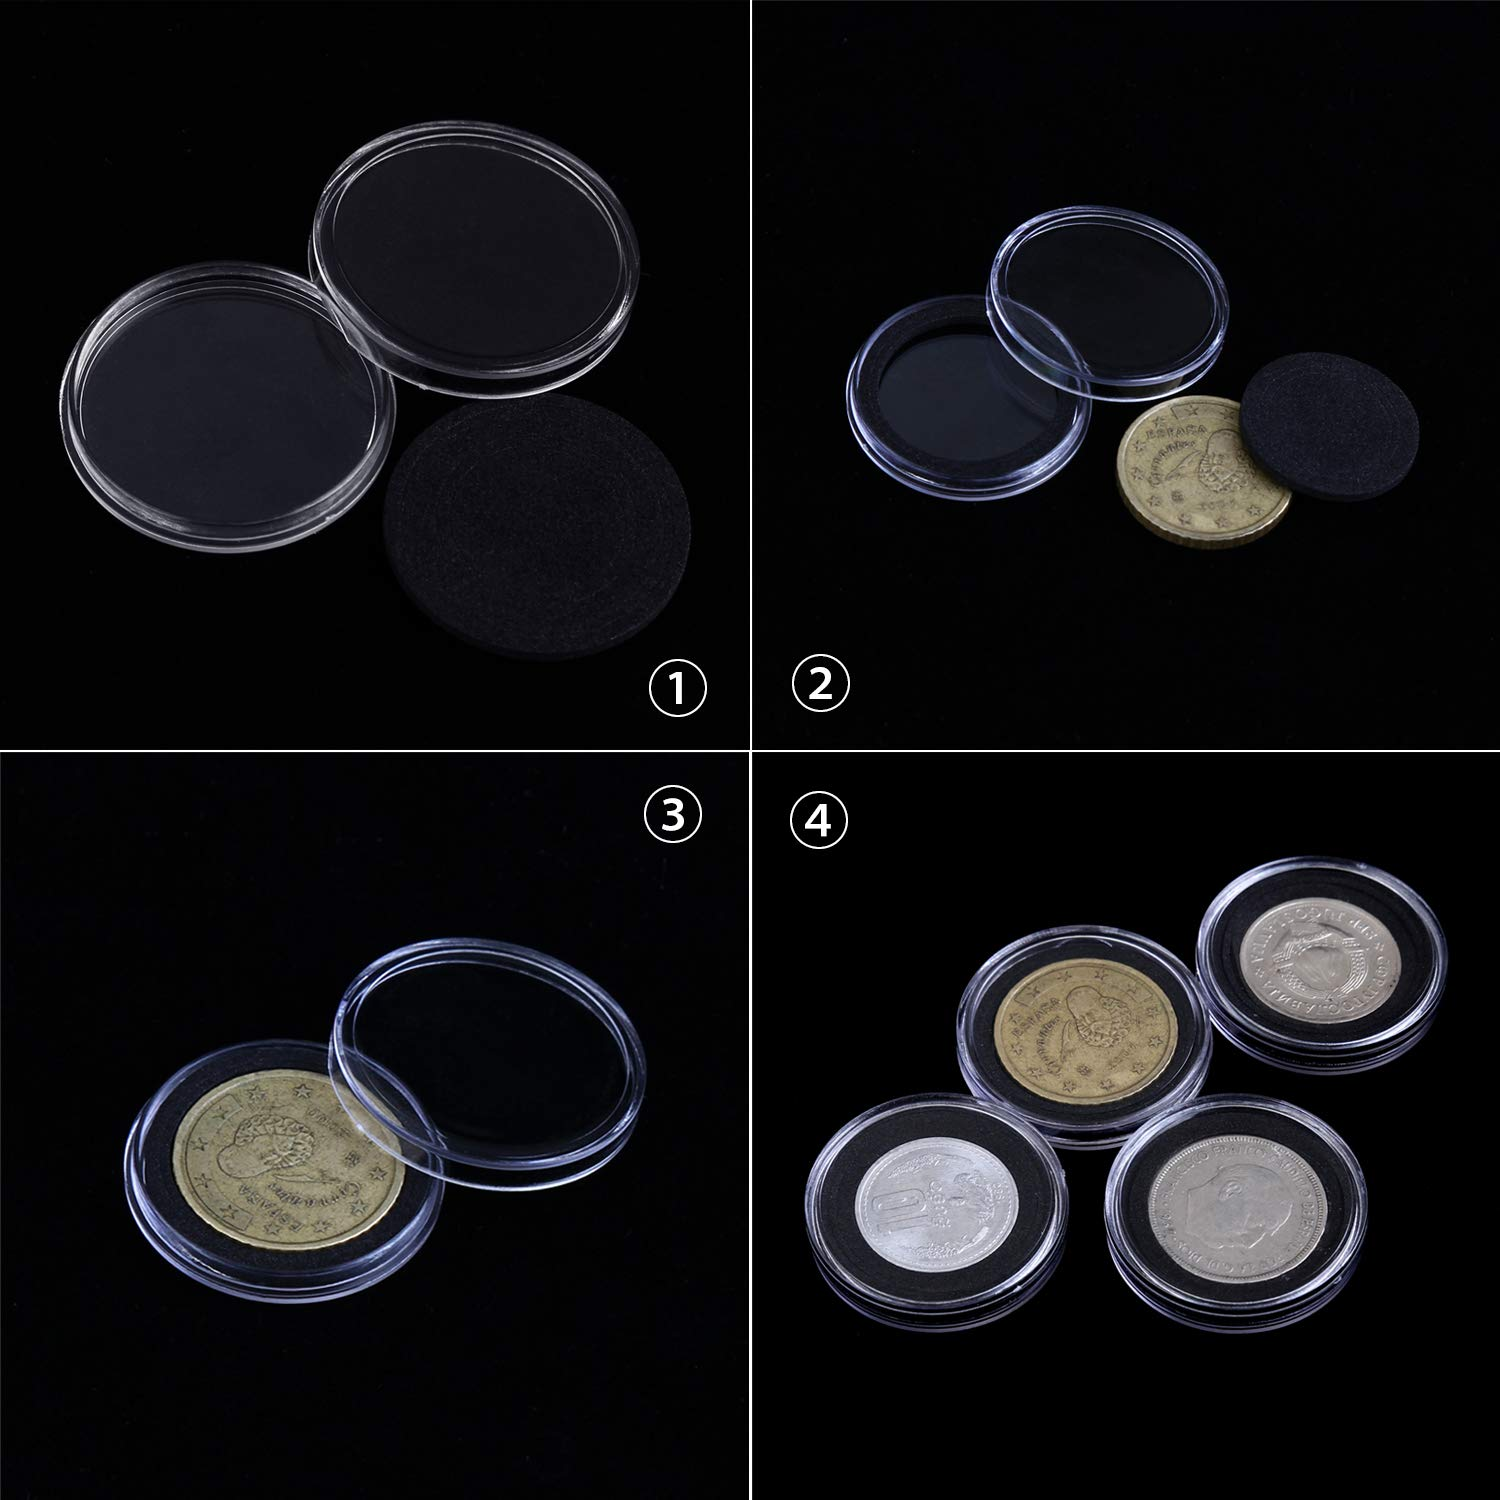 dewdropy 50PCS Round Coin Capsules With Wooden Storage Box Plastic Coin Collection Holder Acrylic Coin Display Case Organizer Container For Collectors